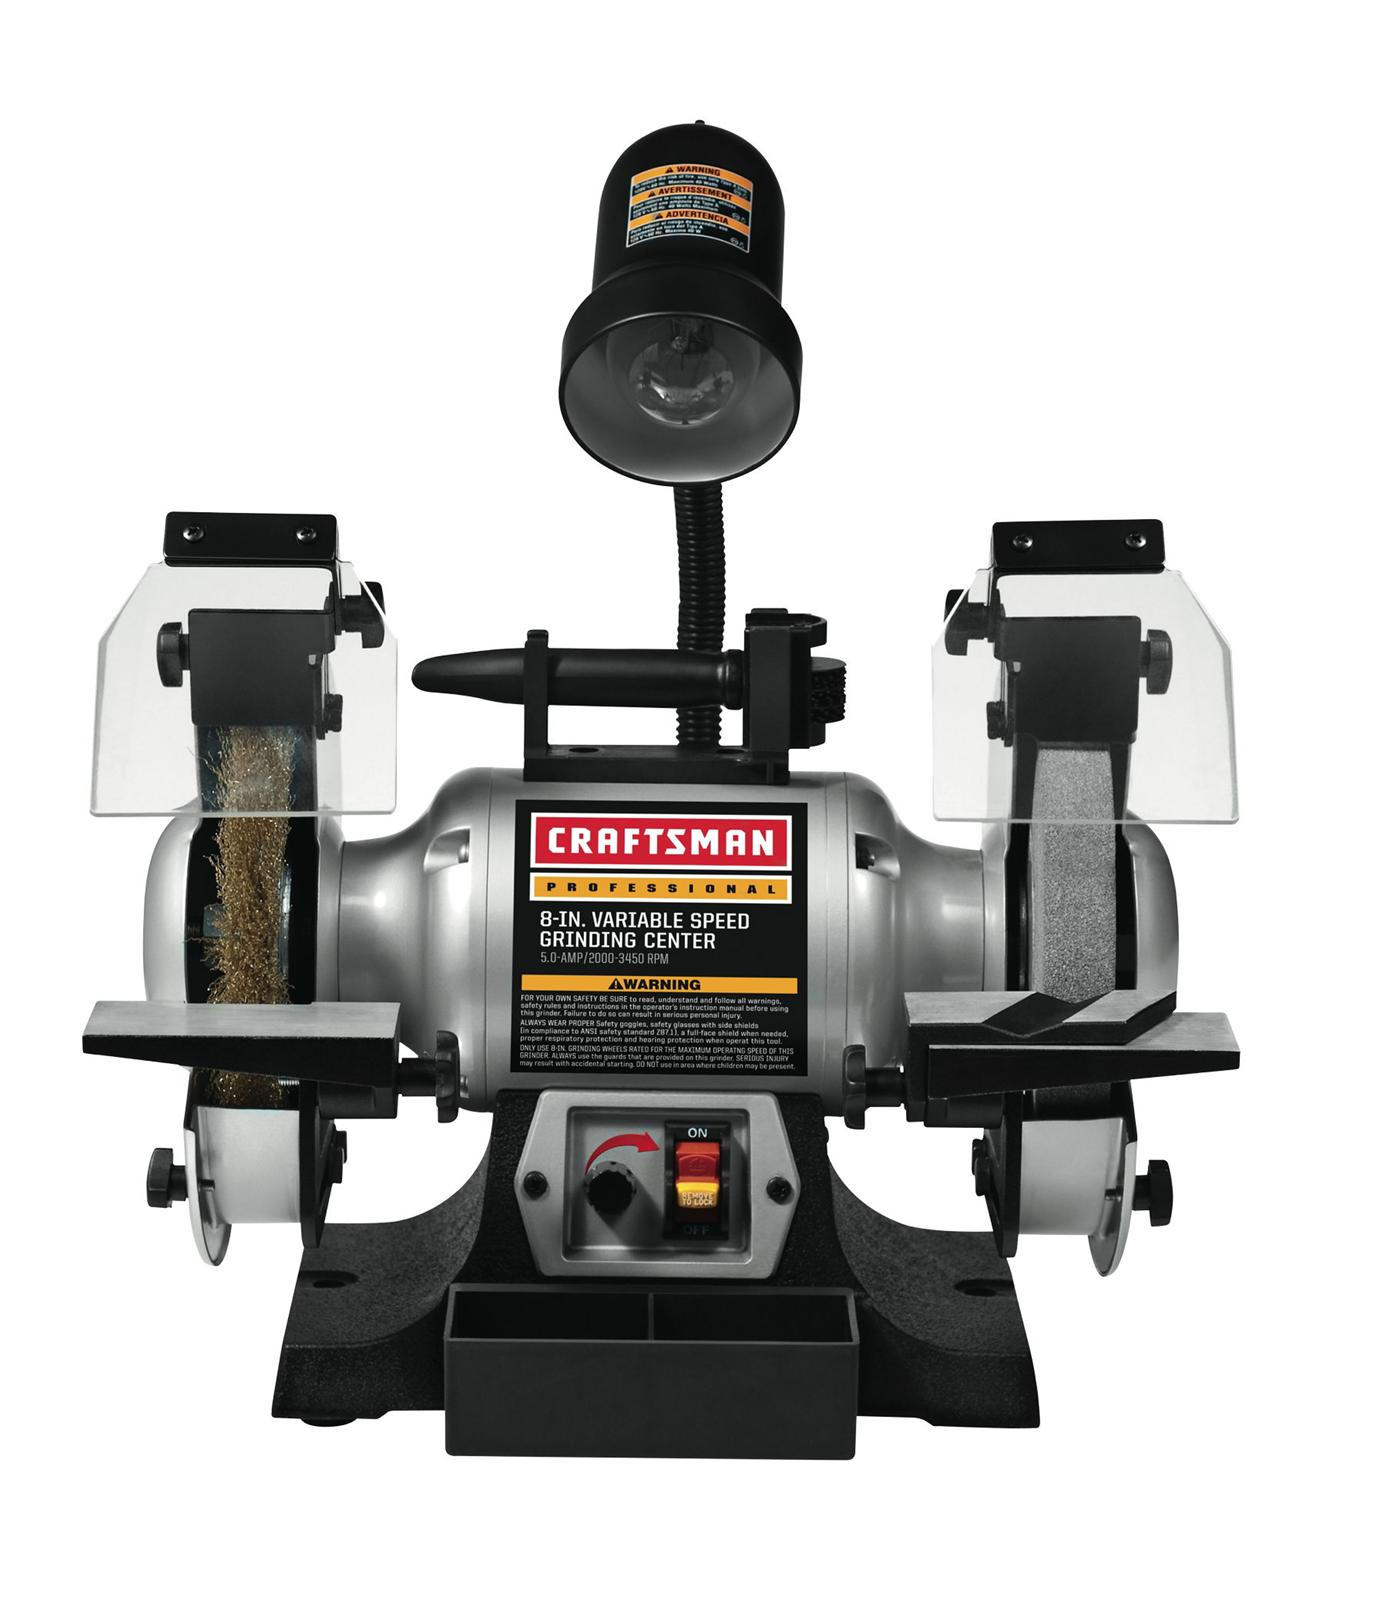 Craftsman 8 In Variable Speed Bench Grinders 009 21162 Free Shipping On Orders Over 99 At